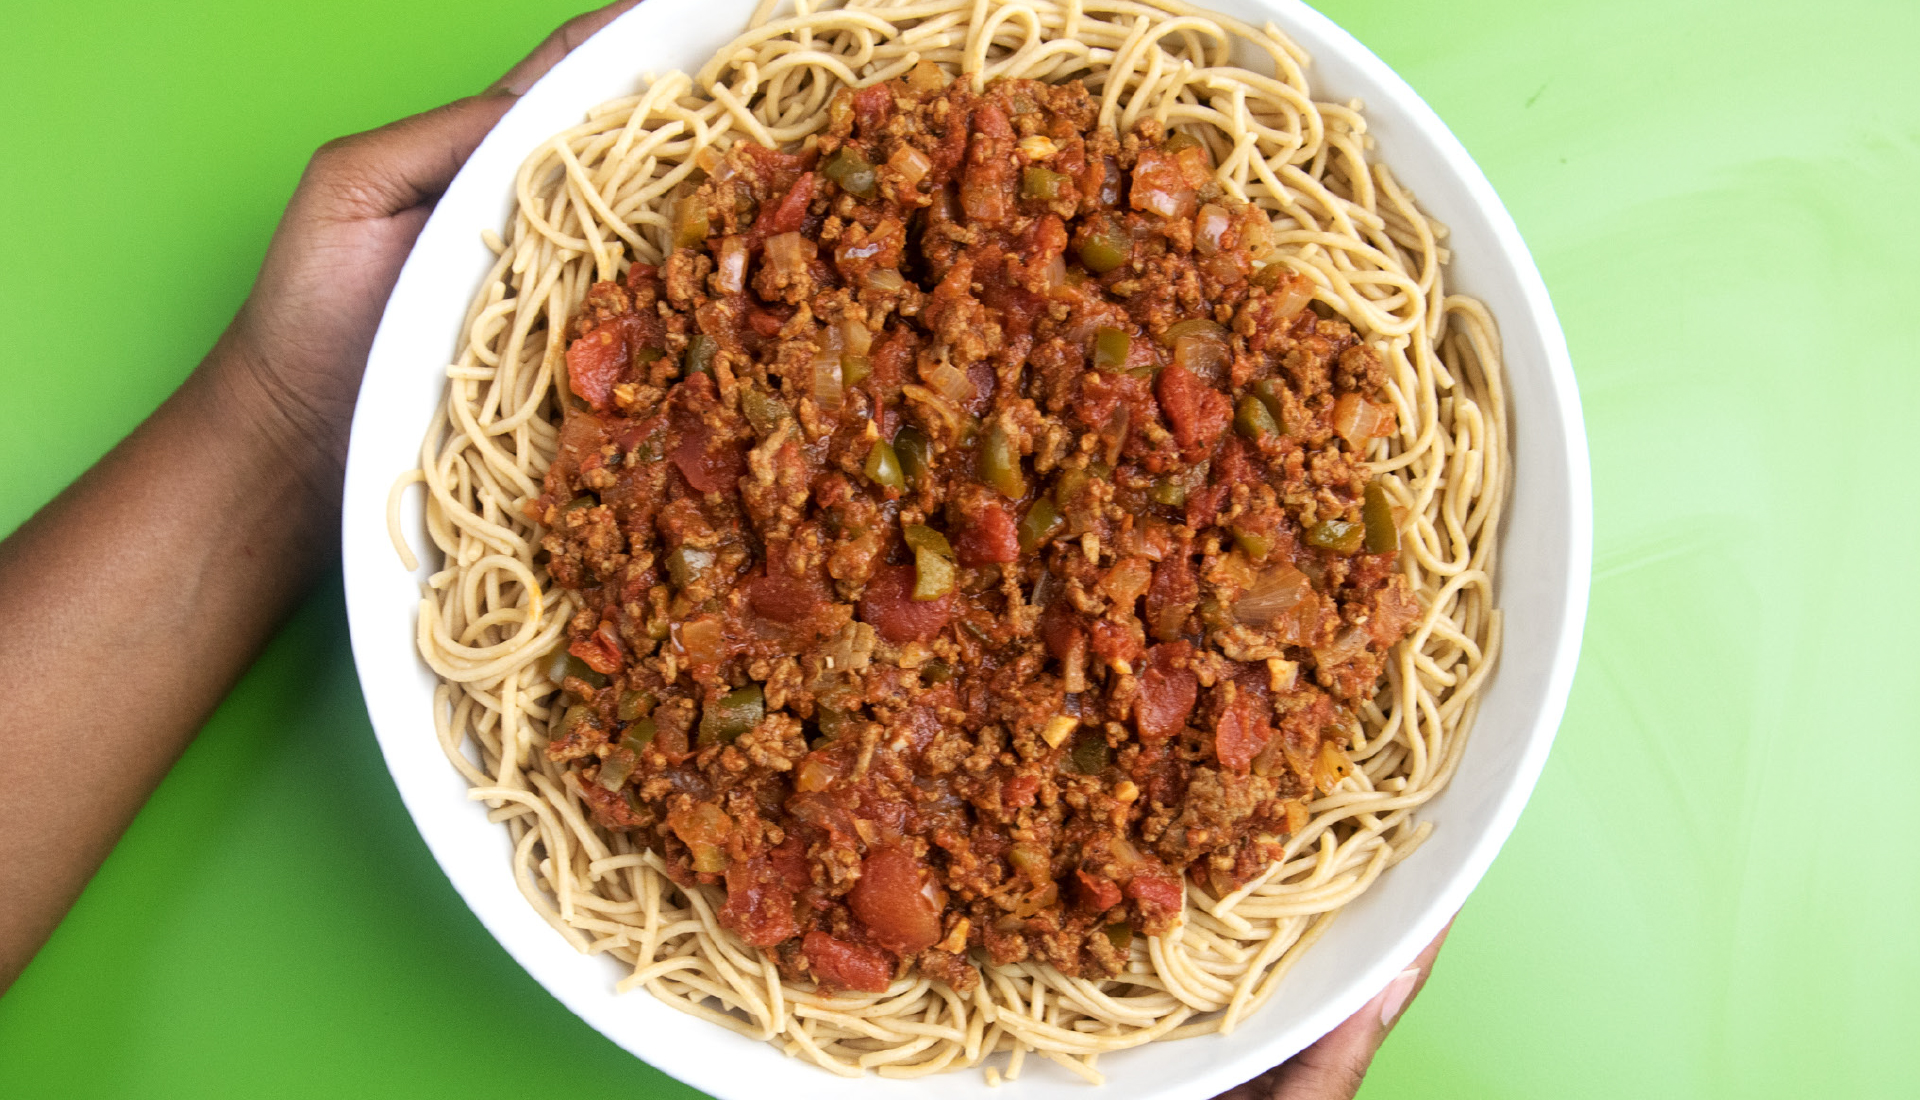 Hands presenting bowl of spaghetti topped with tomato and meat sauce